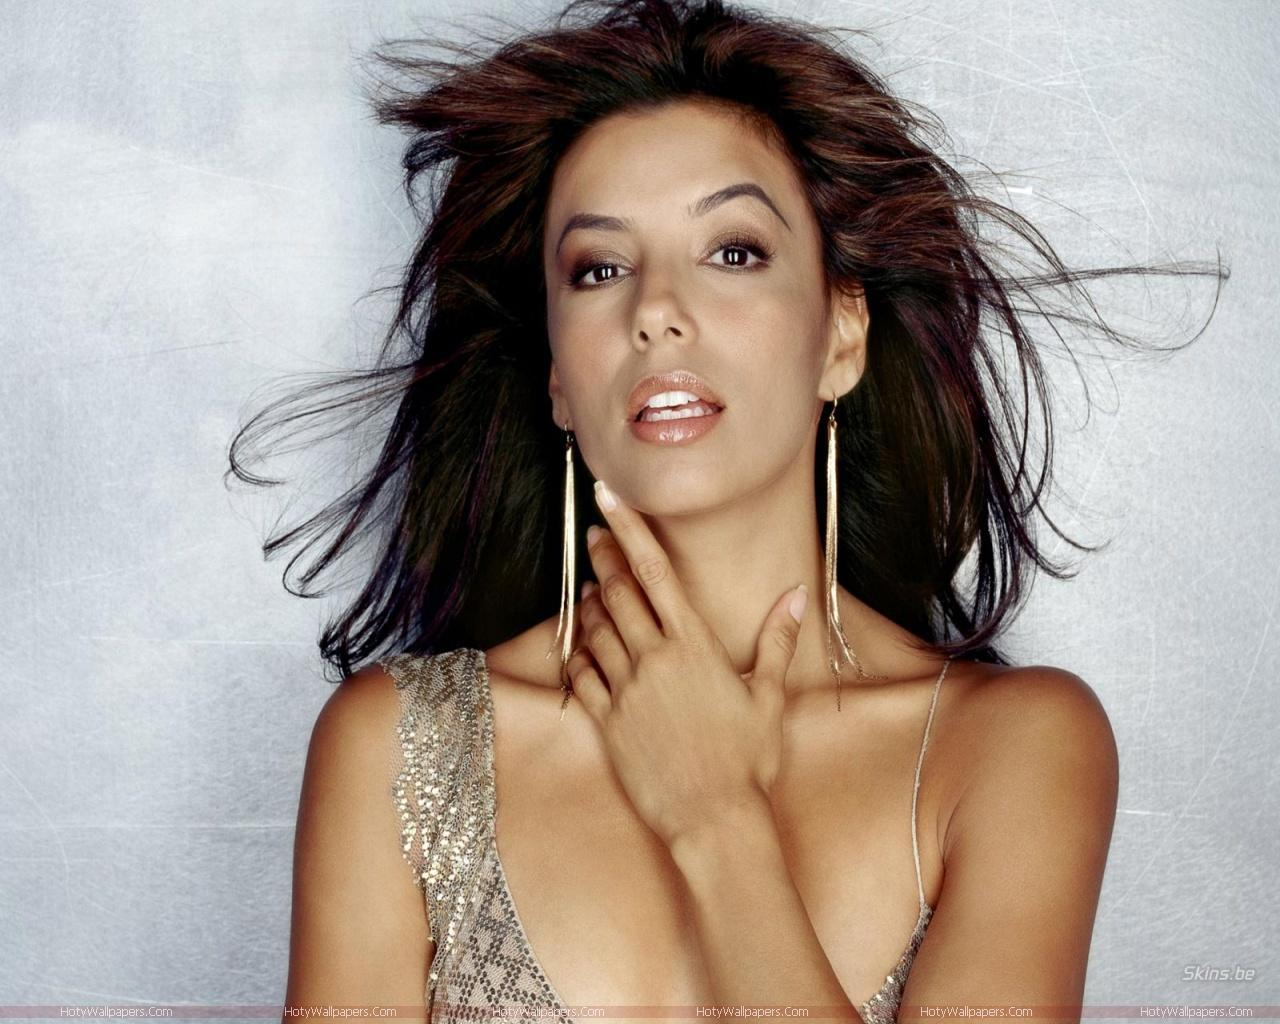 http://2.bp.blogspot.com/-HsMtdBb9PC8/TliyTCN_nxI/AAAAAAAAJ7o/fAtfB1ETdA4/s1600/hollywood-actress-Eva-Longoria-beautiful.jpg